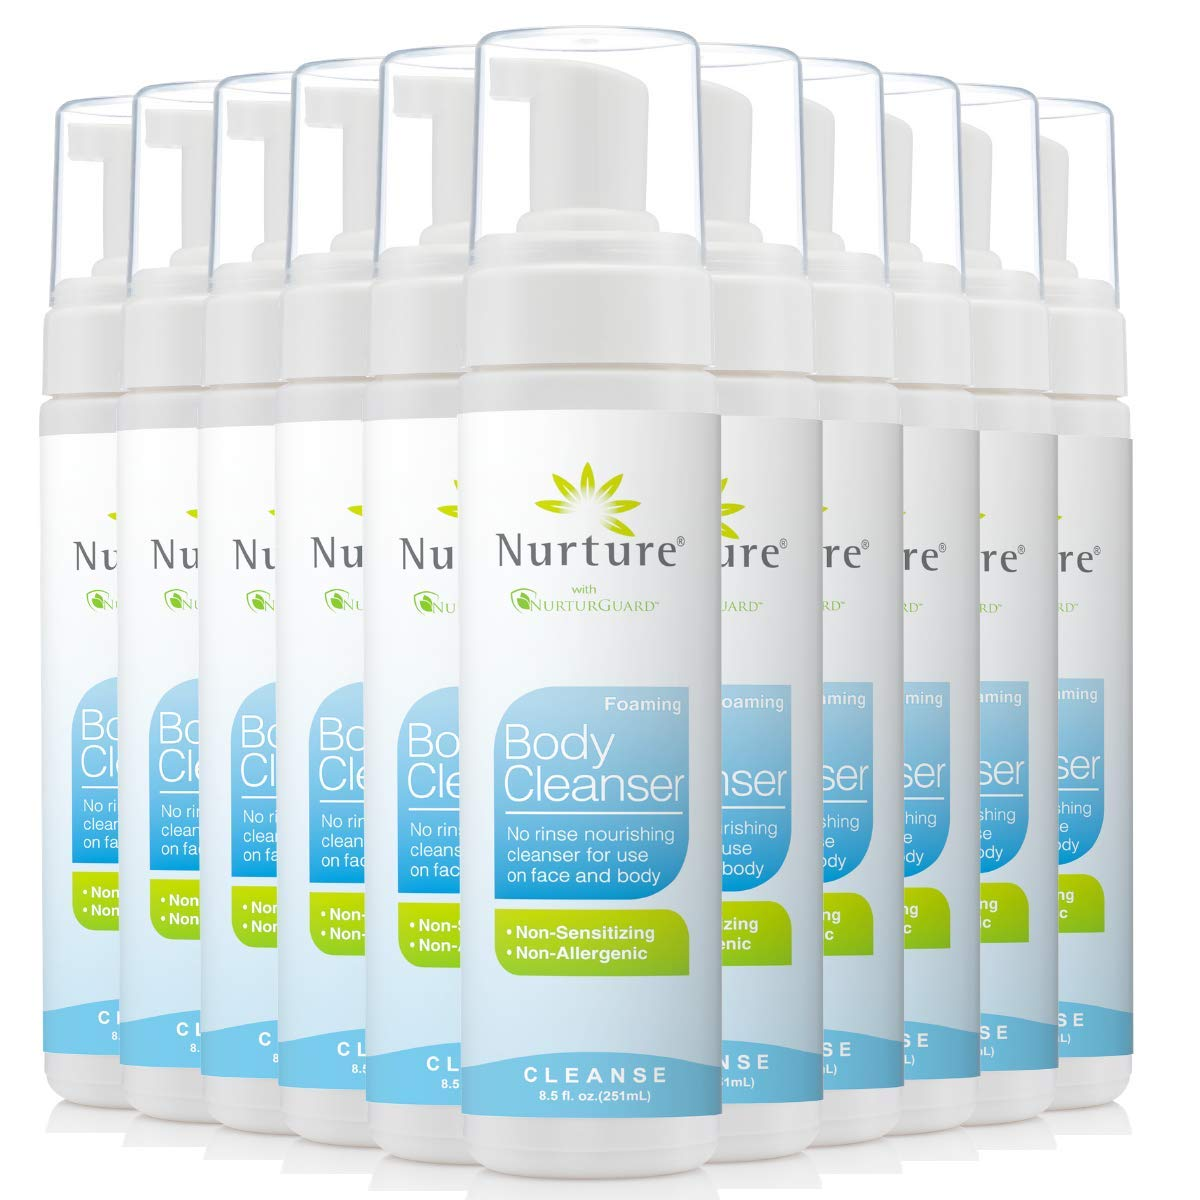 Rinse Free Body Wash Cleanser | No Rinse Foaming Body Wash That Cleanses, Moisturizes, and Protects Skin - Non Allergenic - Non sensitizing - Wipe Away Cleanser - 12 Bottles